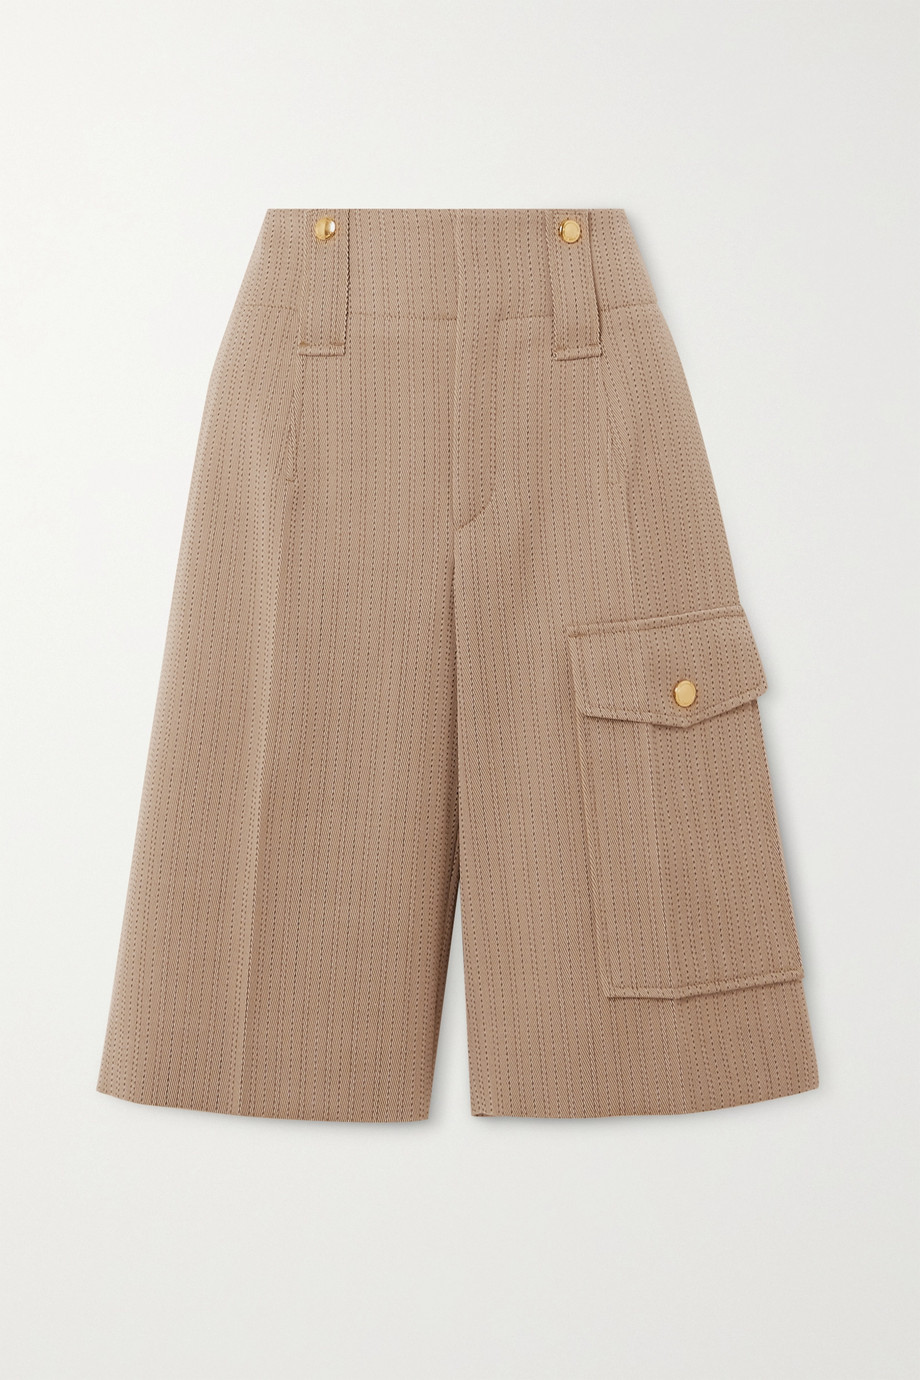 Chloé Pinstriped wool-twill shorts